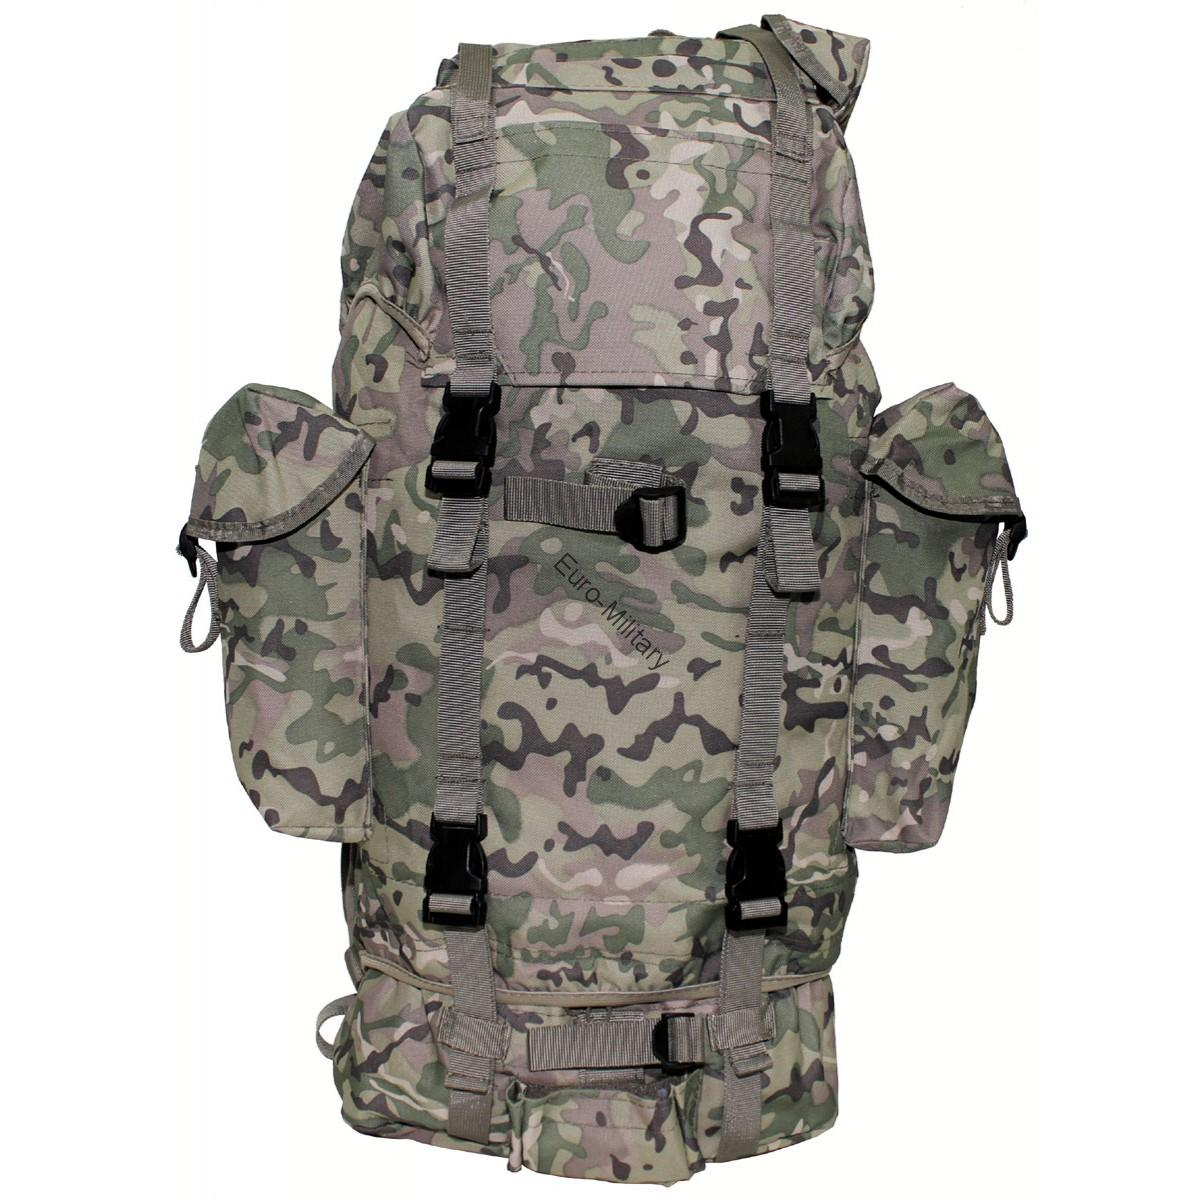 Military Patrol Expedition Backpack Large 65L - Multicam